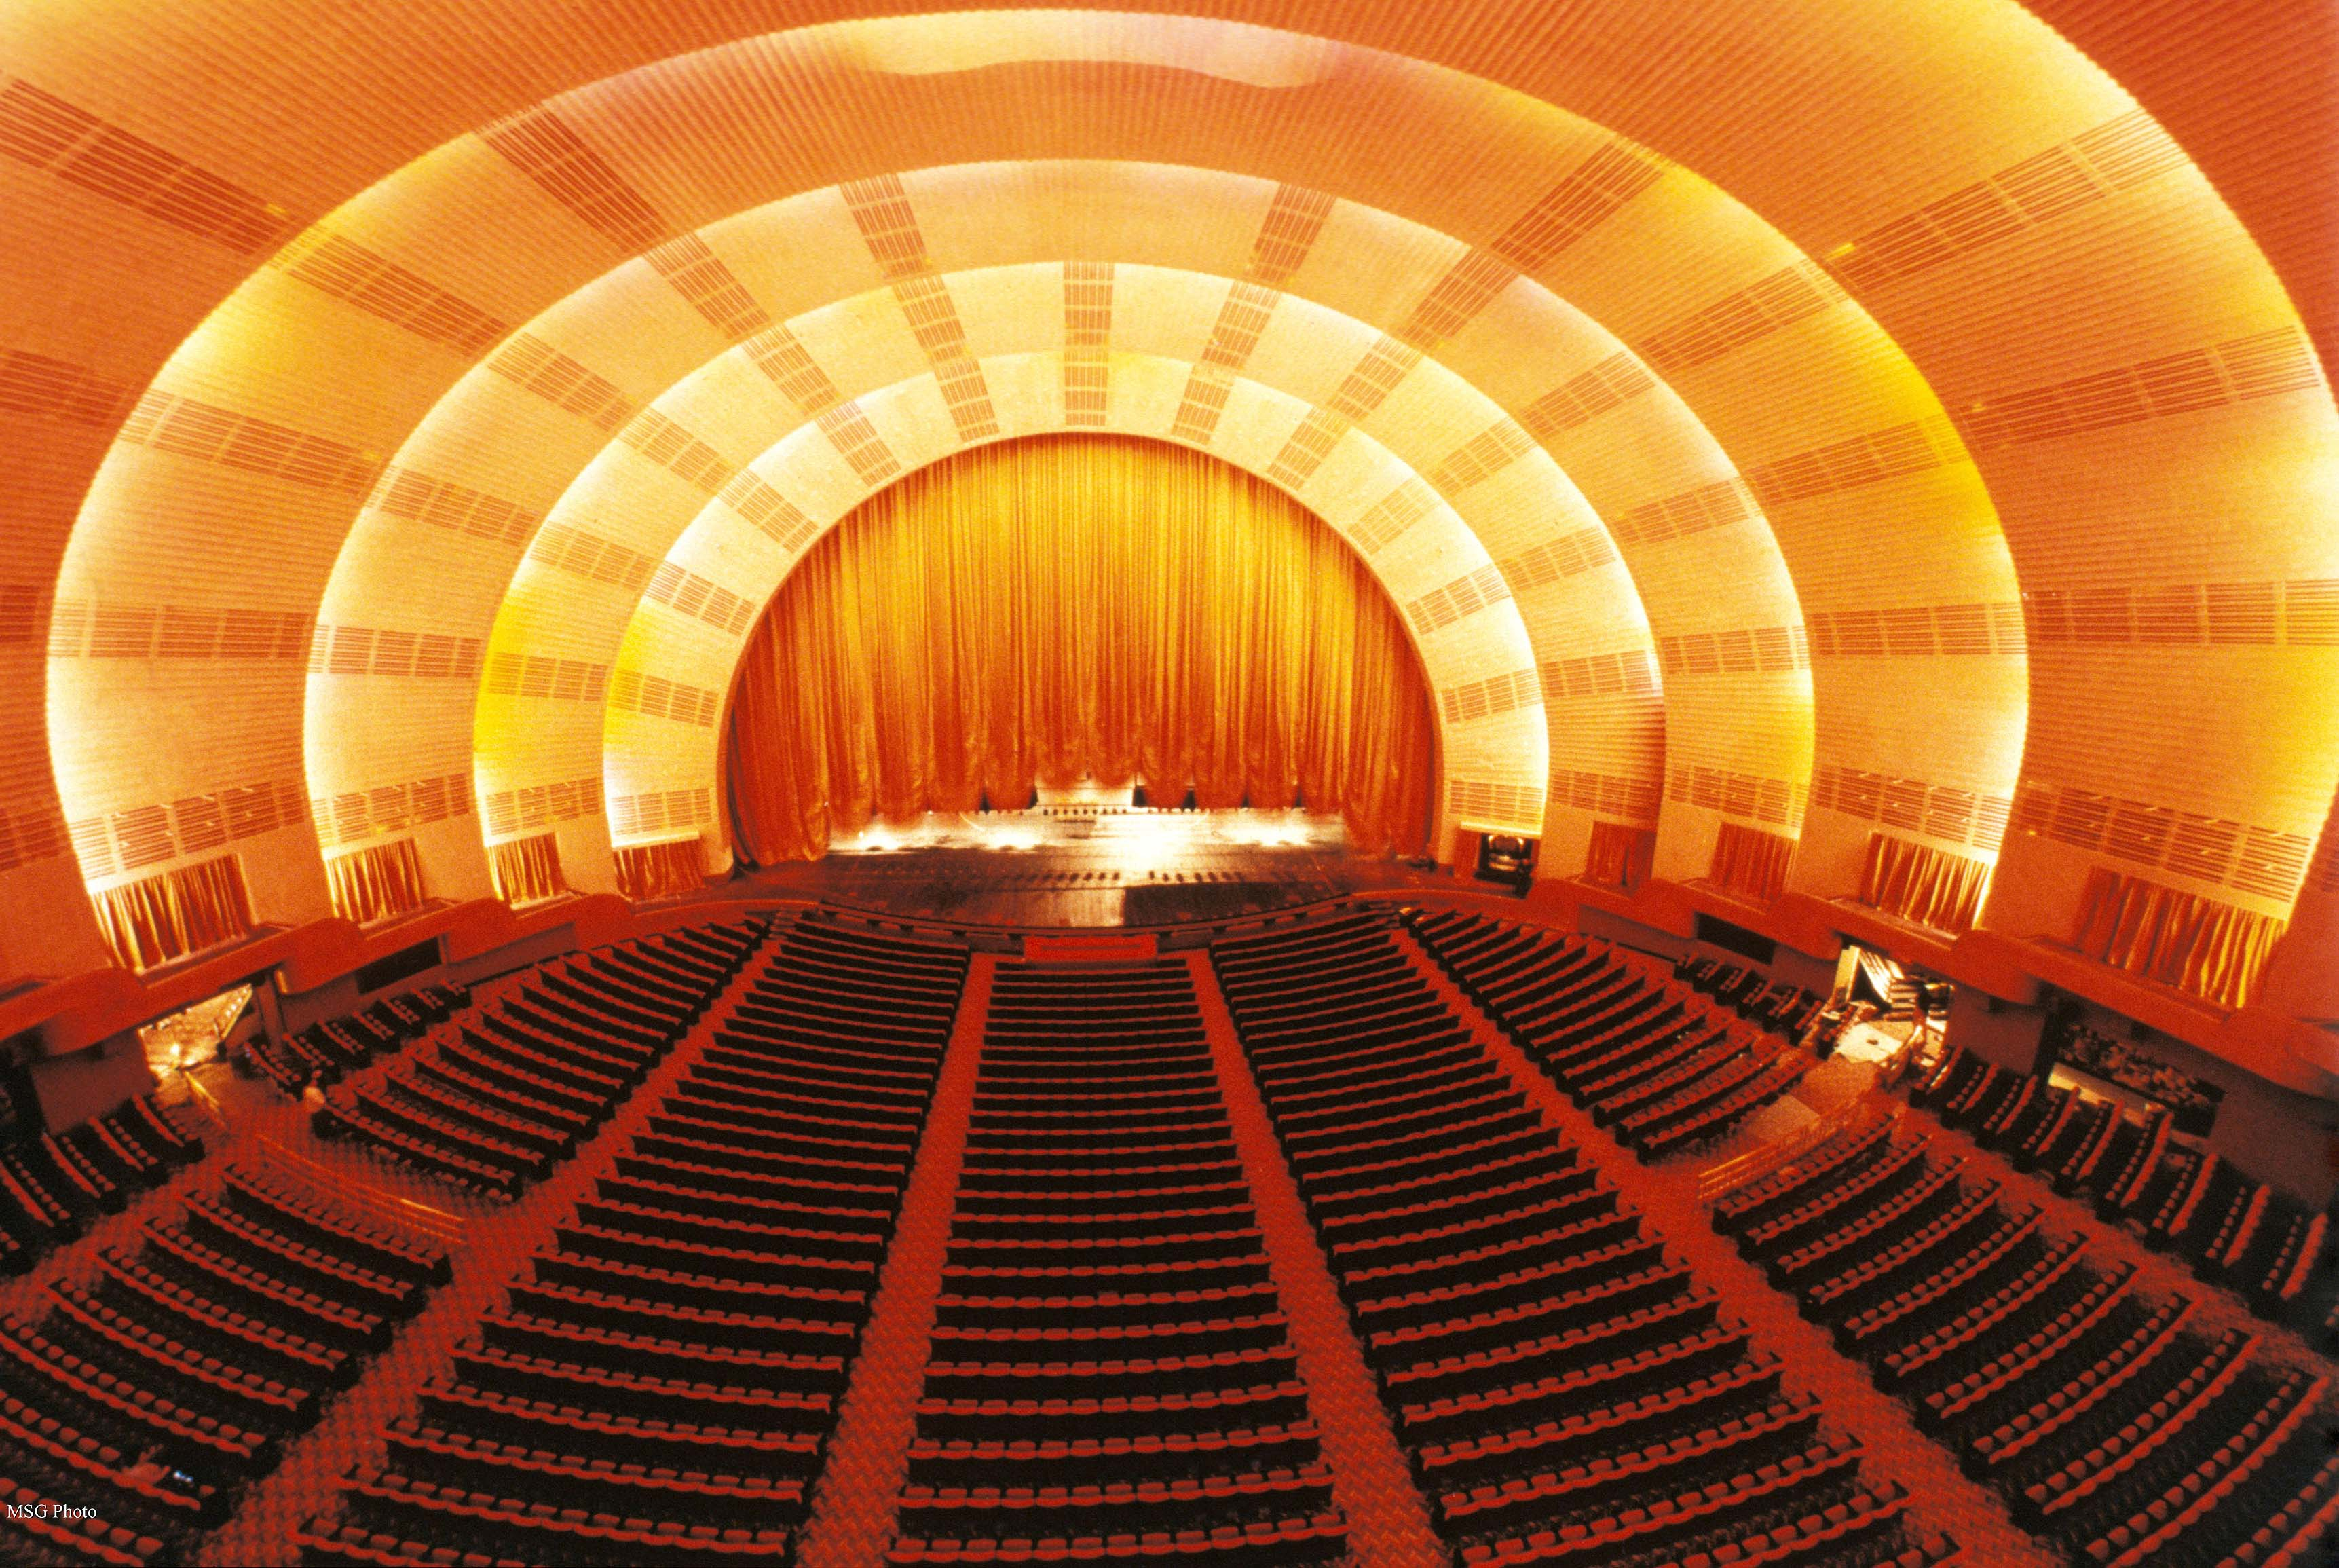 Radio City Music Hall, HISTORY, ART DECO, Rockettes